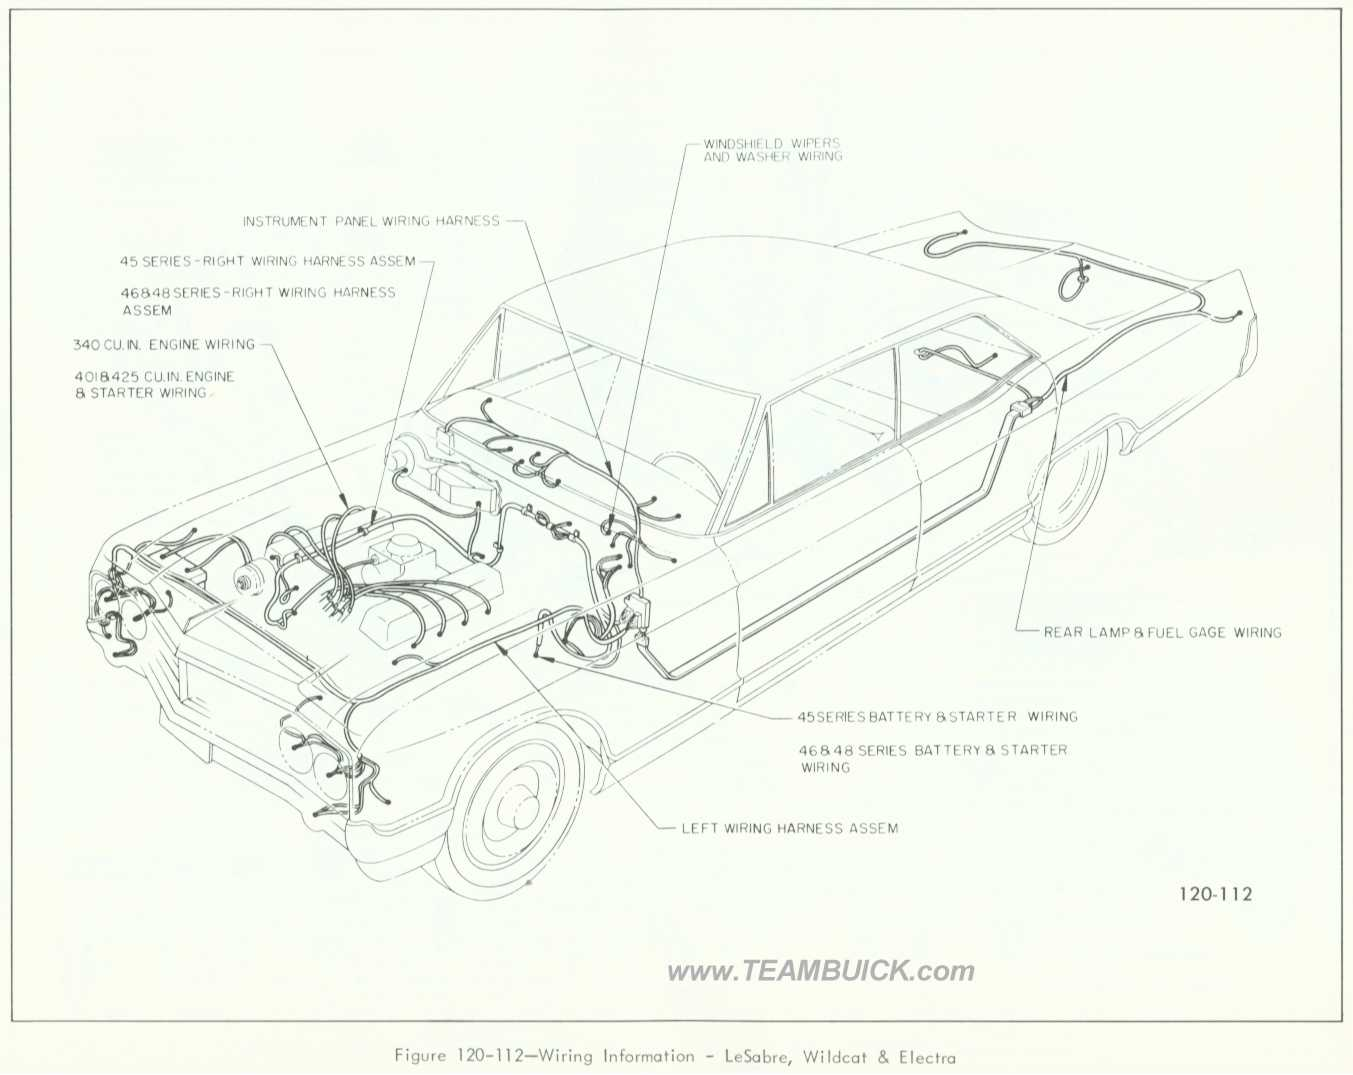 1966 Buick LeSabre, Wildcat and Electra, Wiring Information